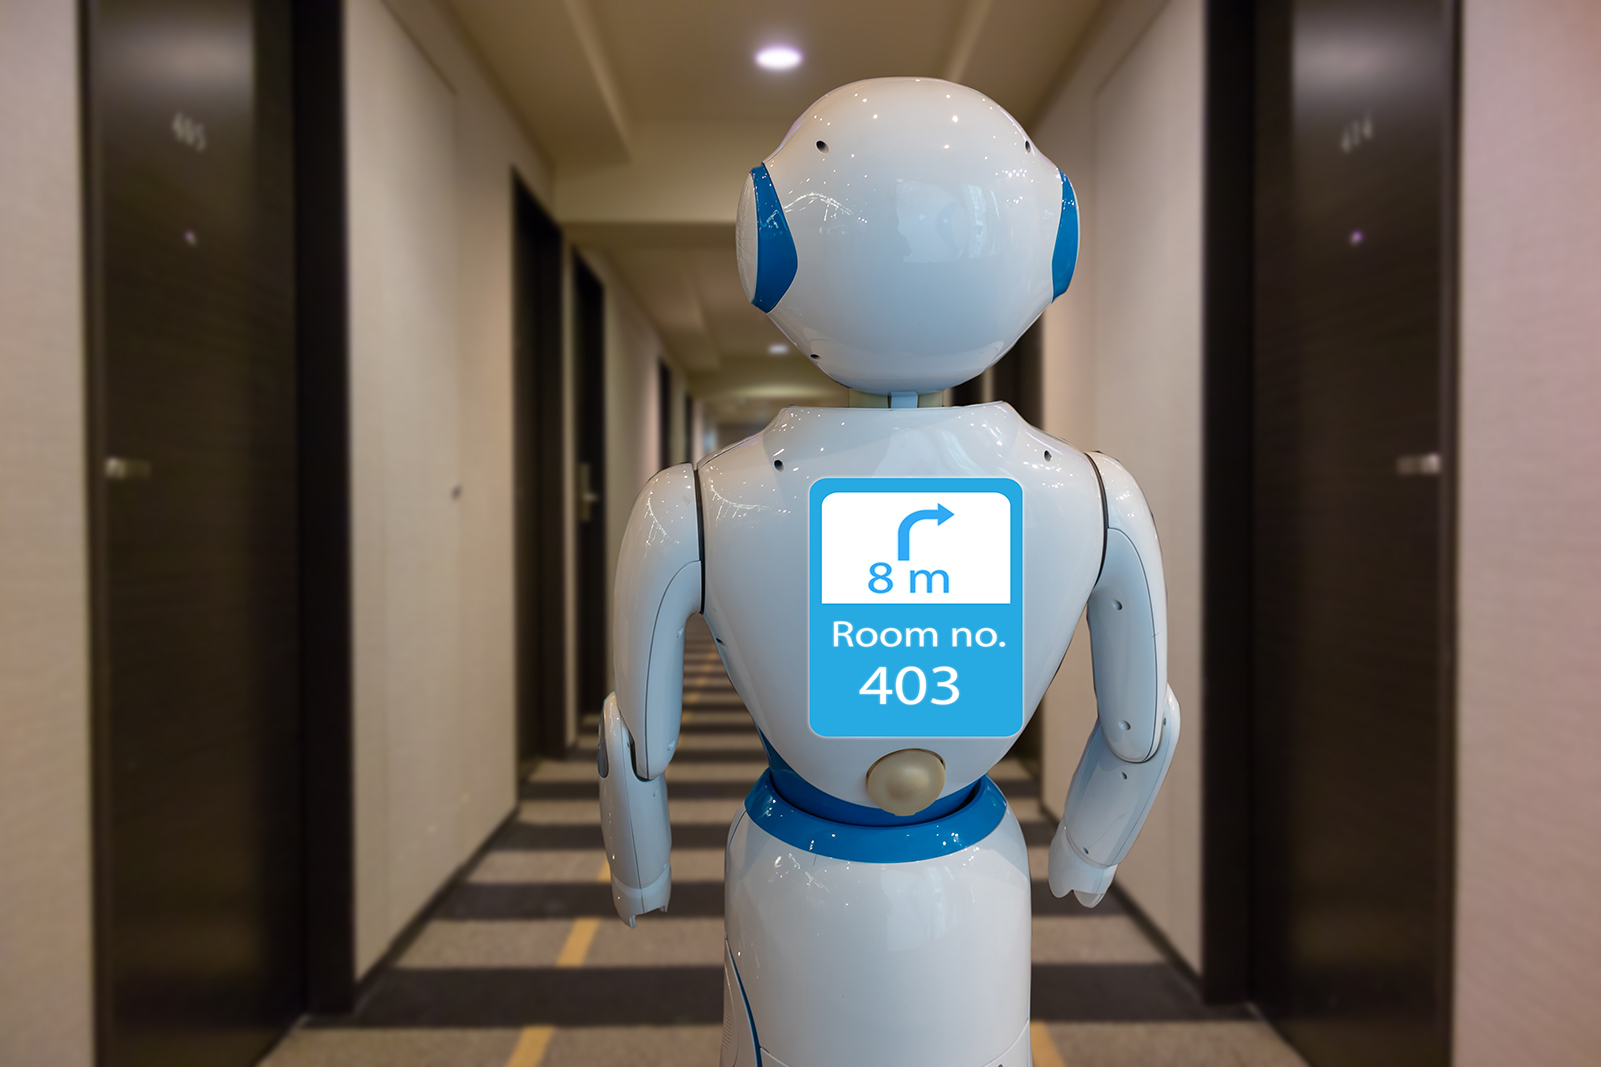 Robotics being used in hospitality spaces